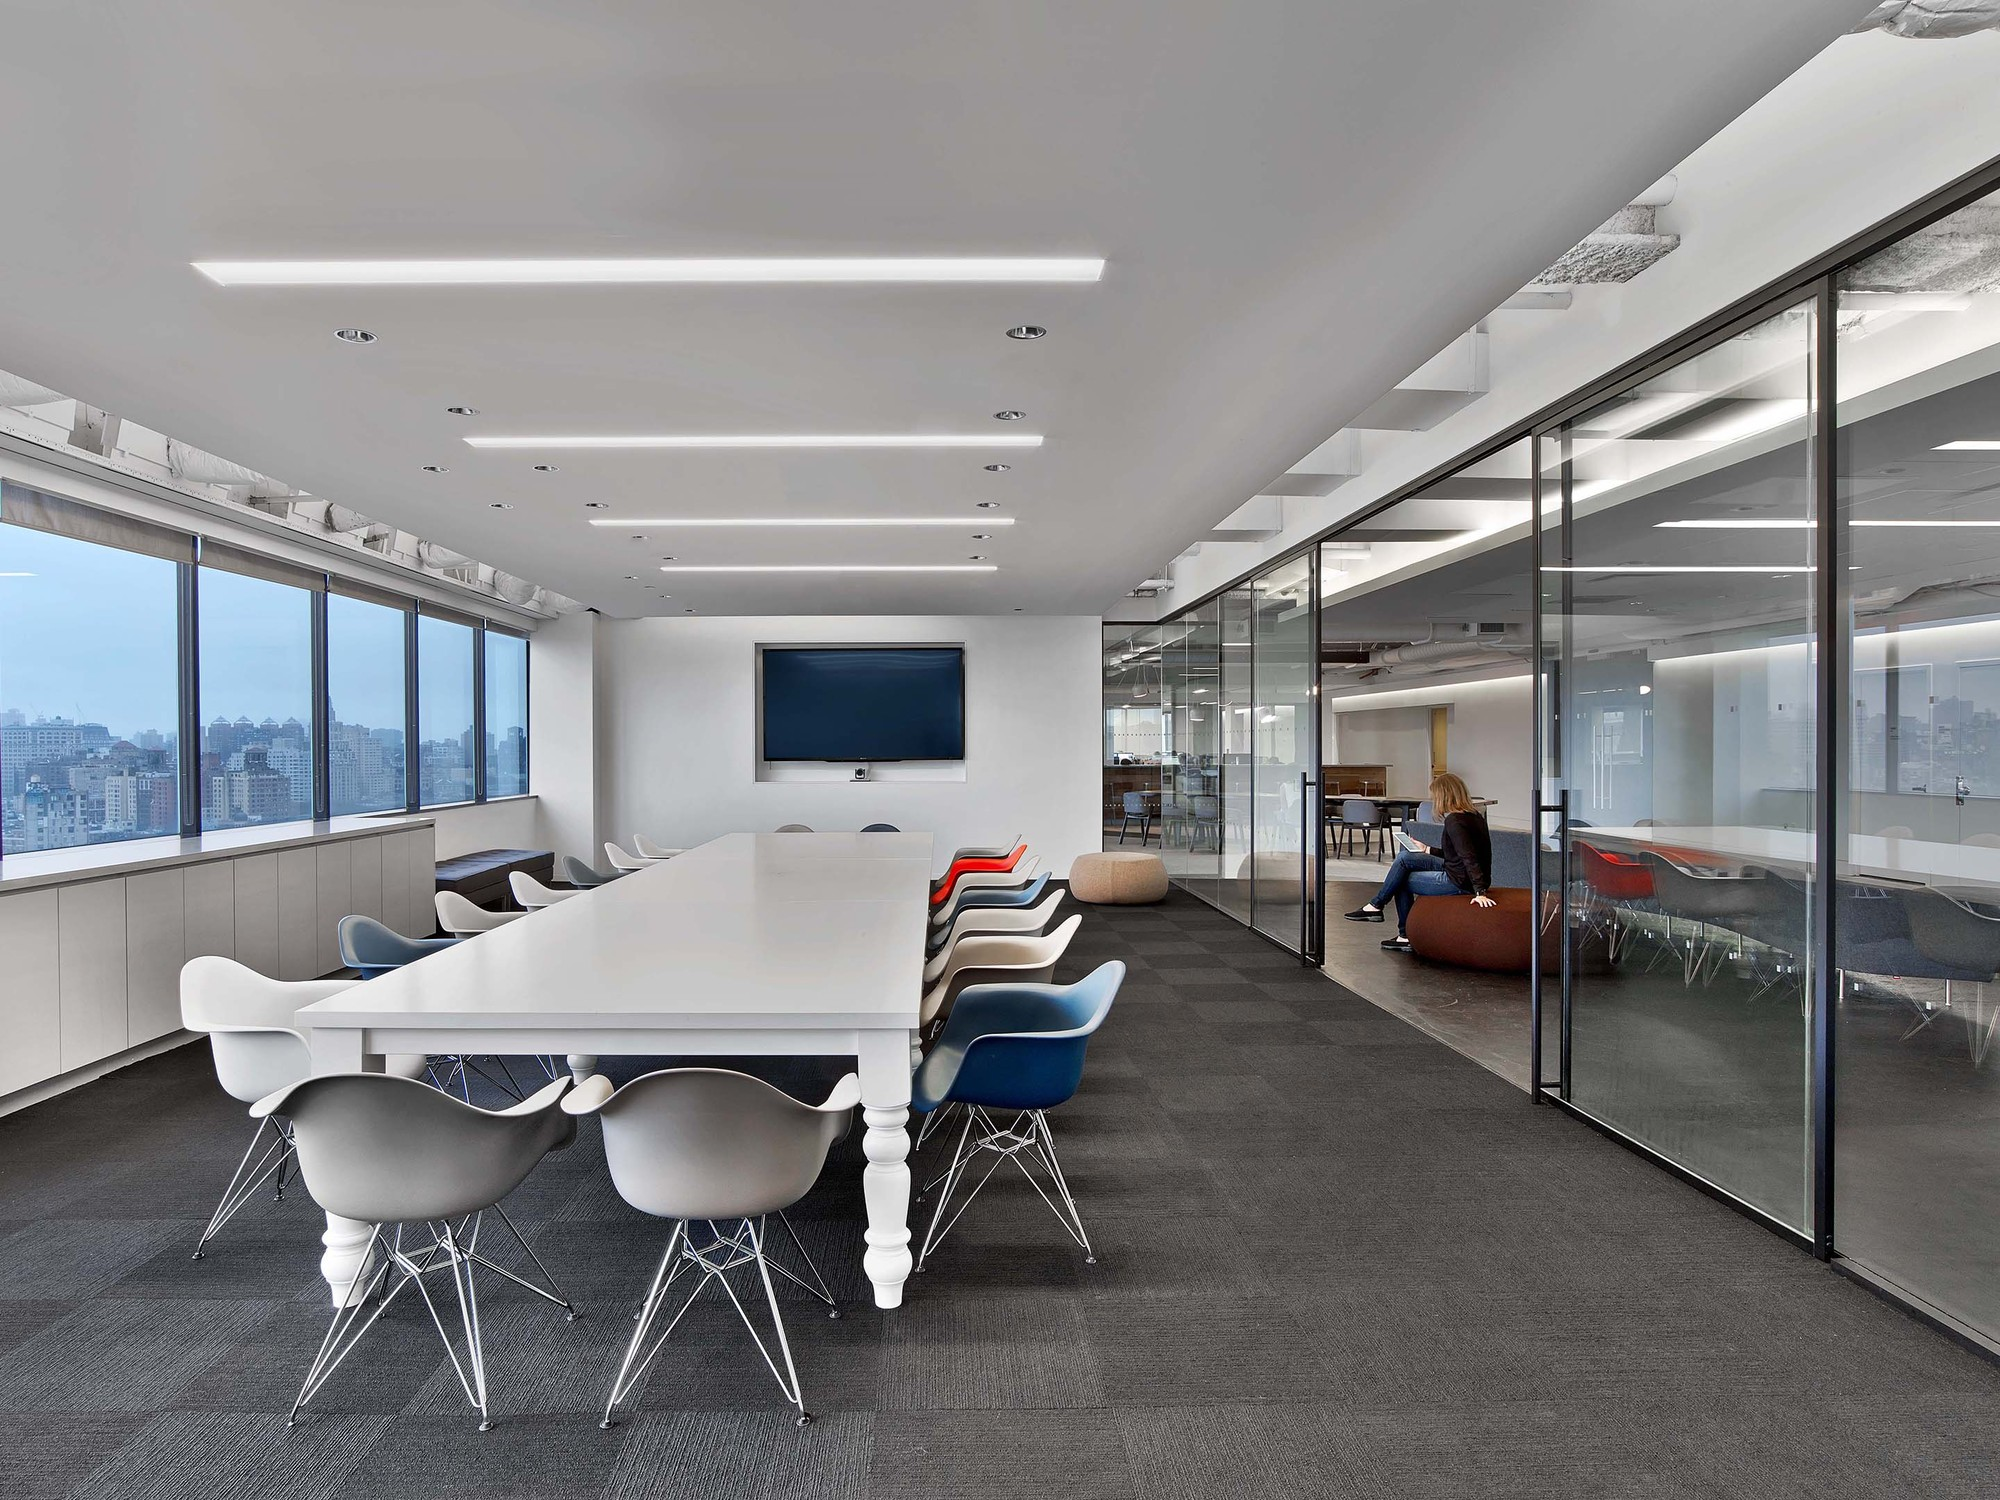 Gallery of saatchi saatchi new york office m moser for 8x10 office design ideas